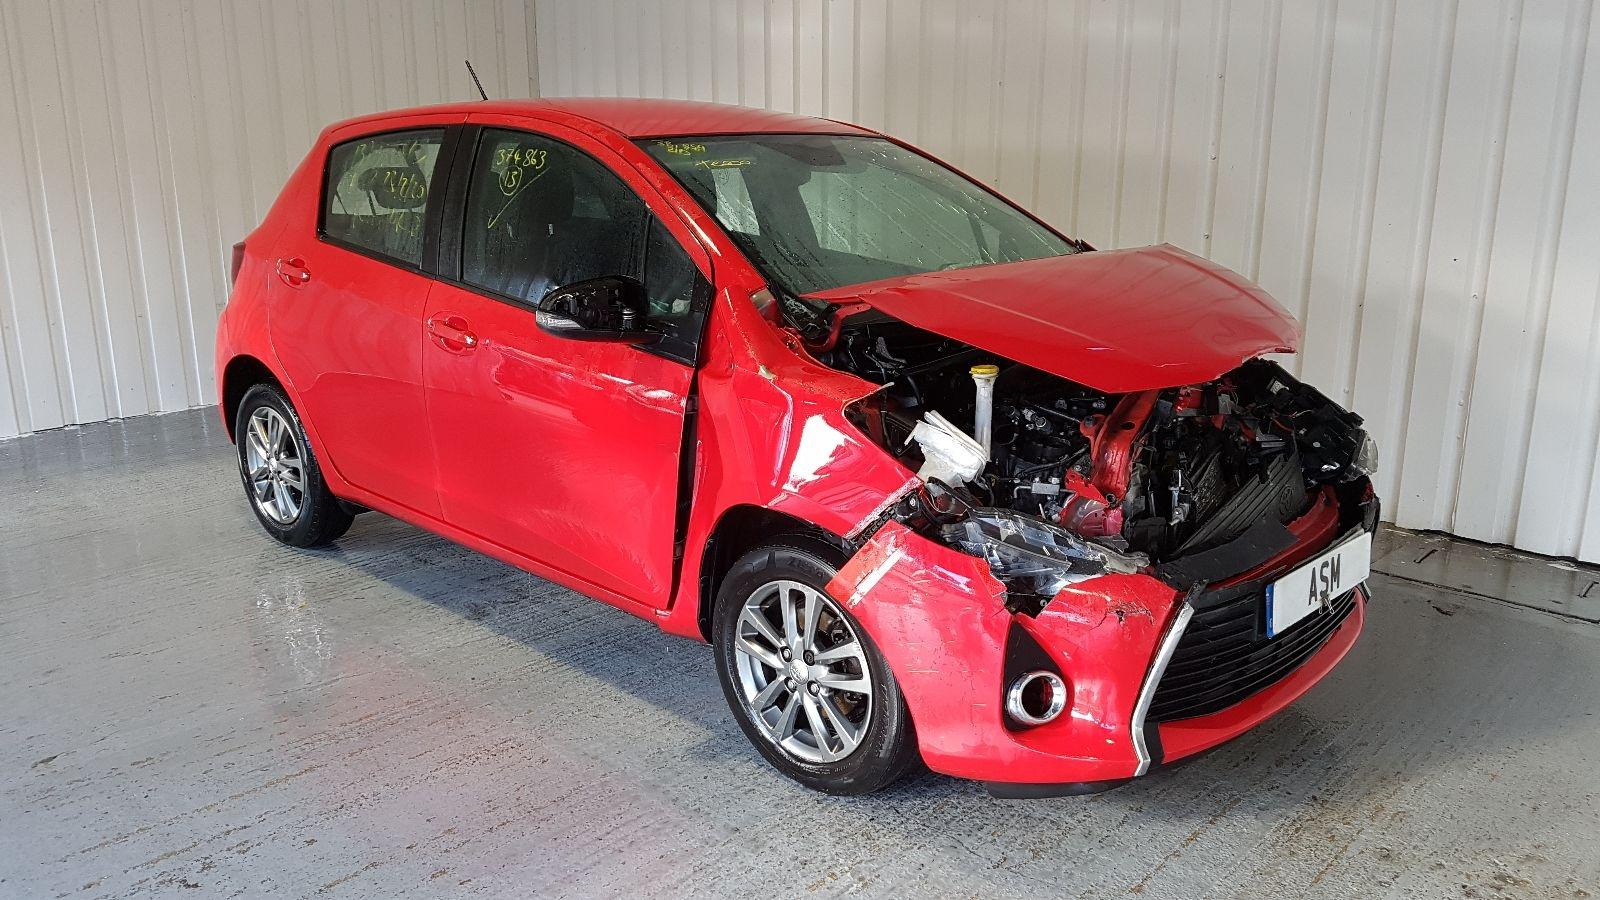 Image for a 2015 Toyota Yaris 1.3 Petrol 1NR-FE Engine